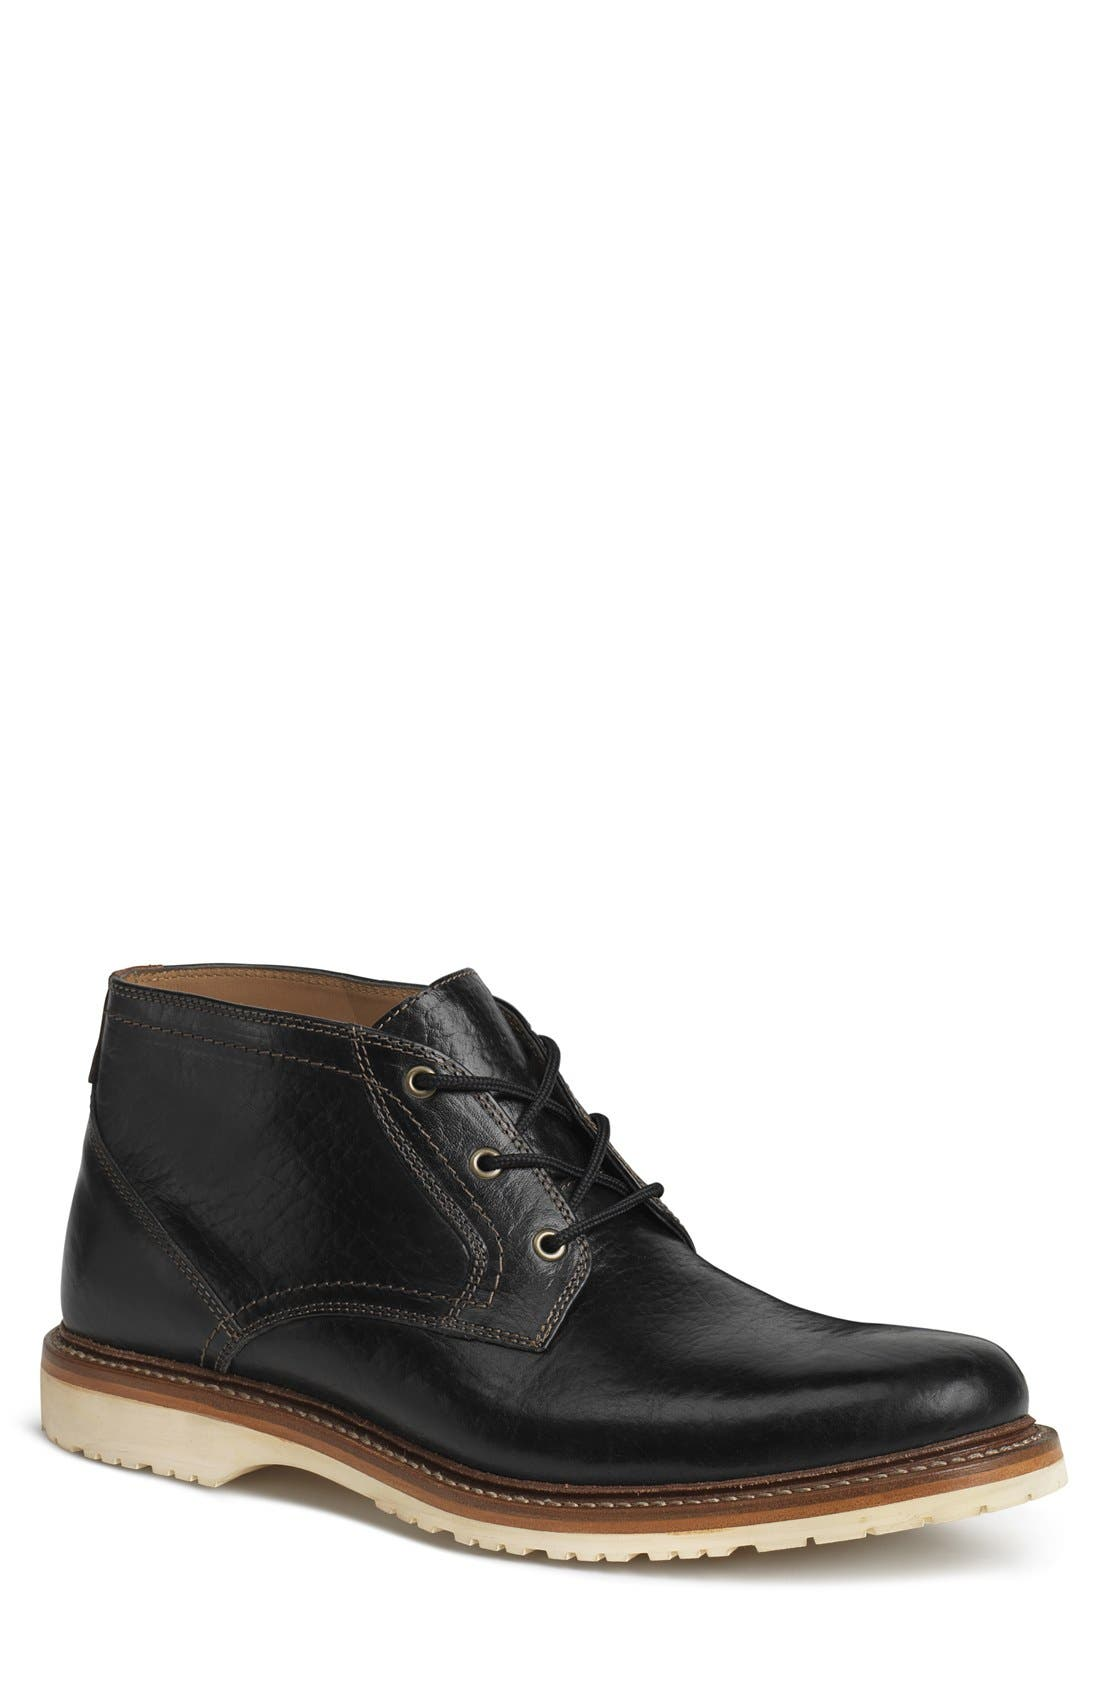 Arlington Chukka Boot,                             Main thumbnail 1, color,                             Black